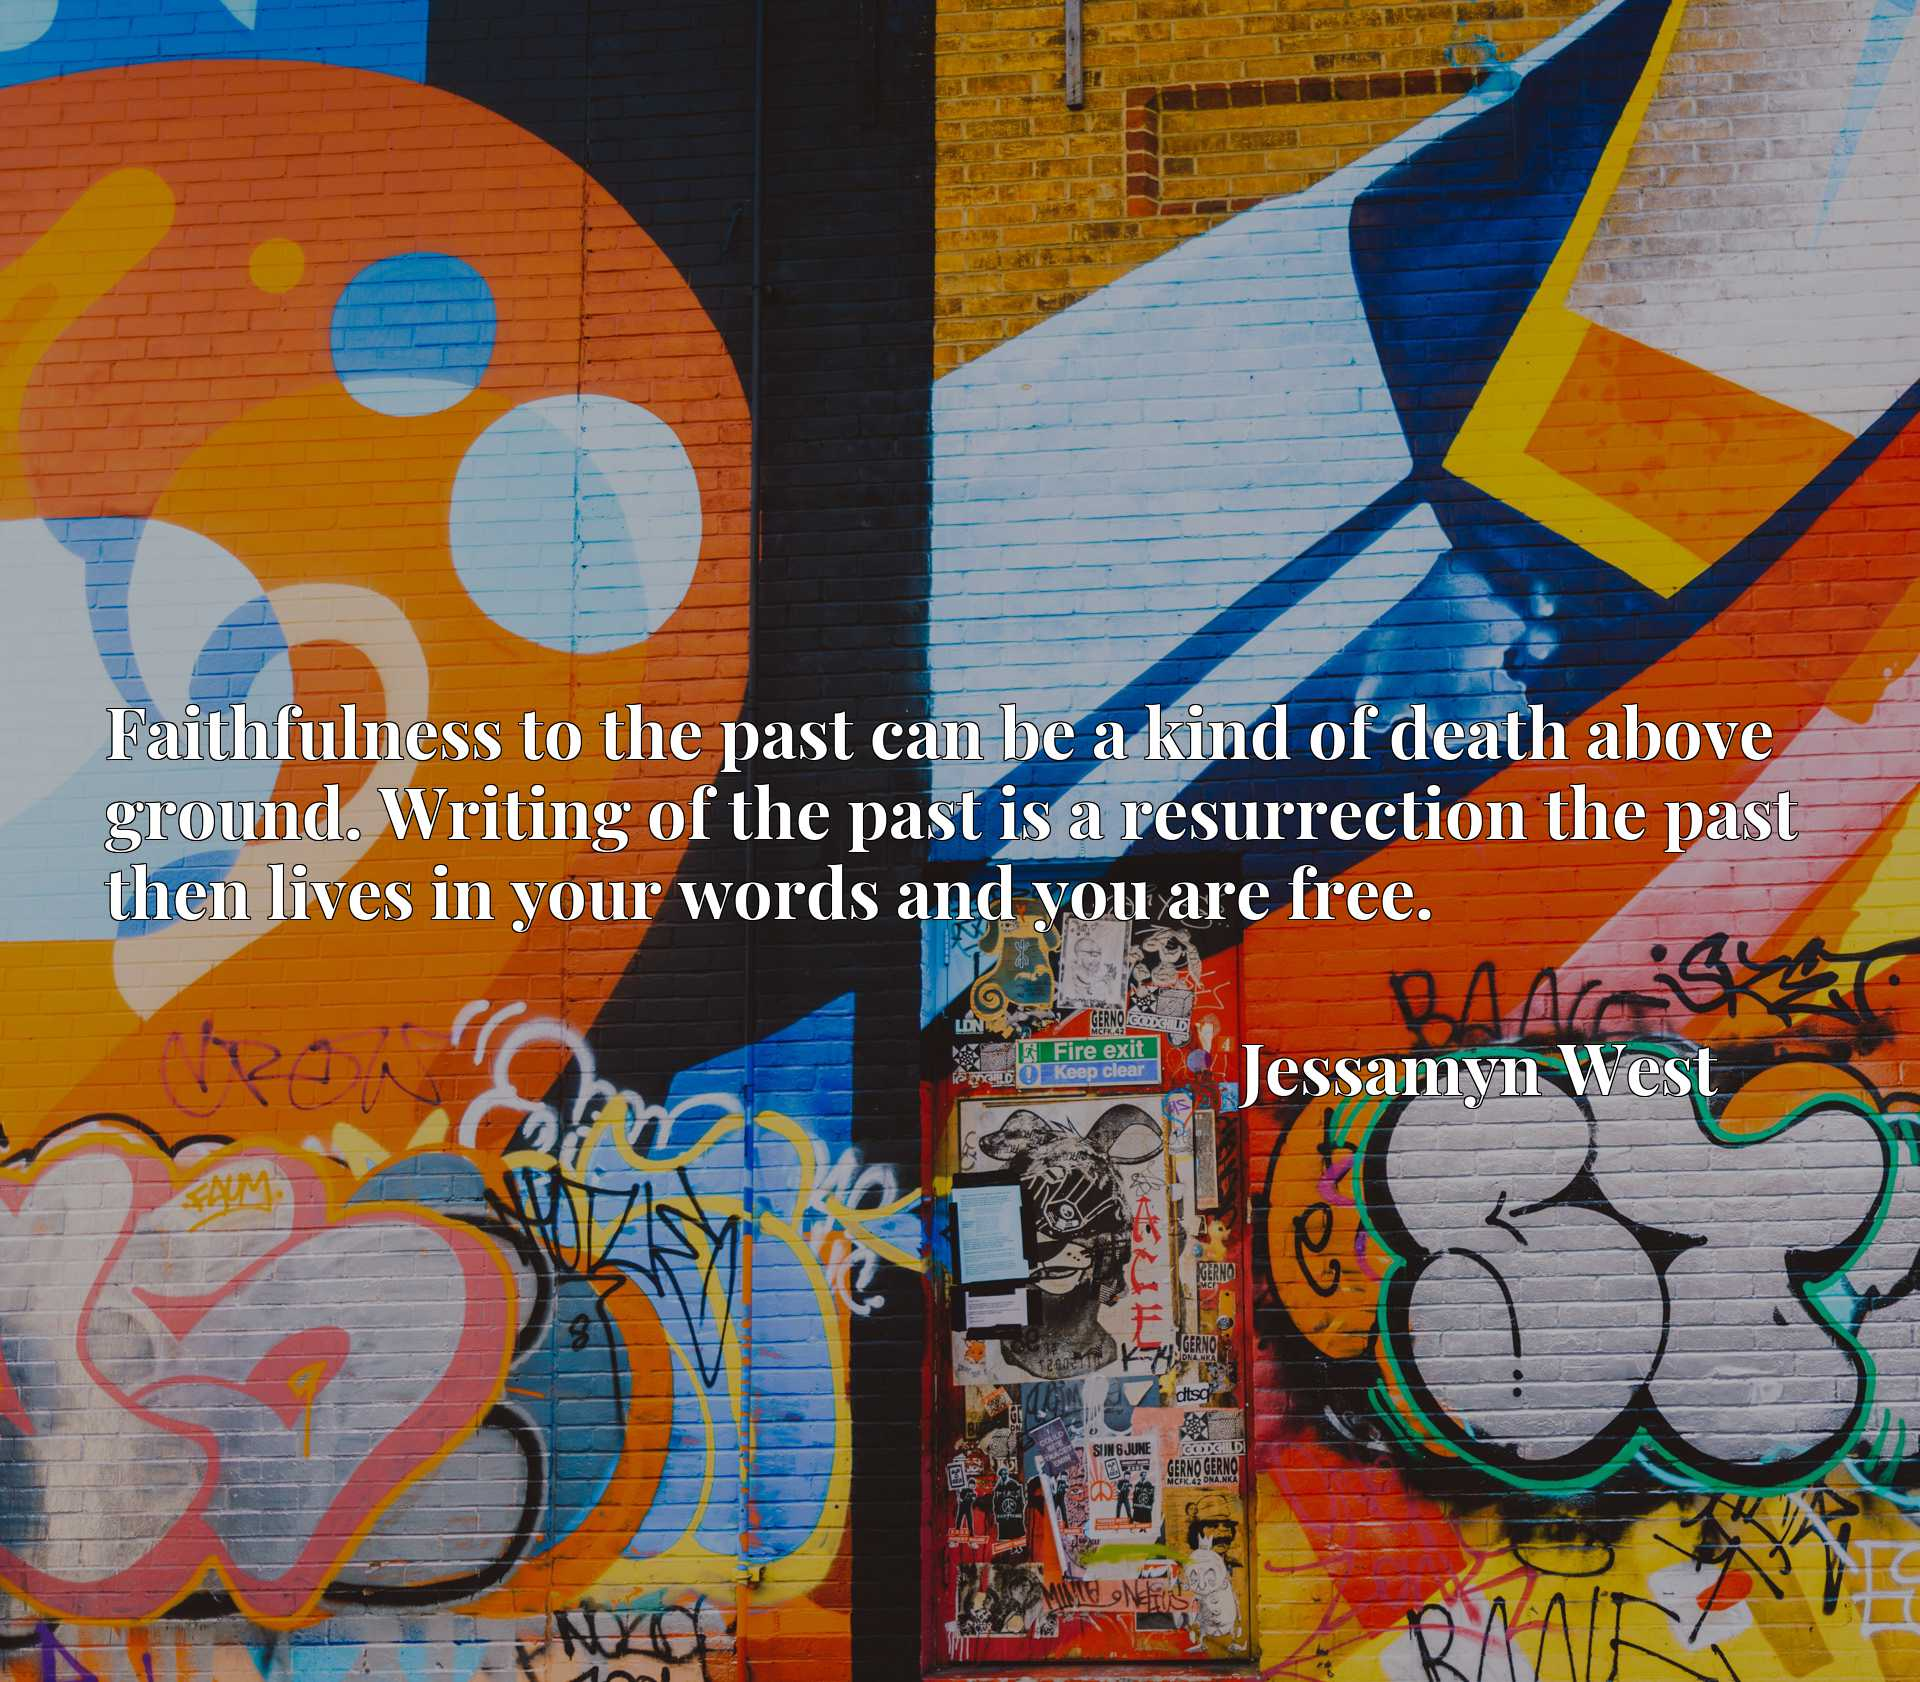 Faithfulness to the past can be a kind of death above ground. Writing of the past is a resurrection the past then lives in your words and you are free.